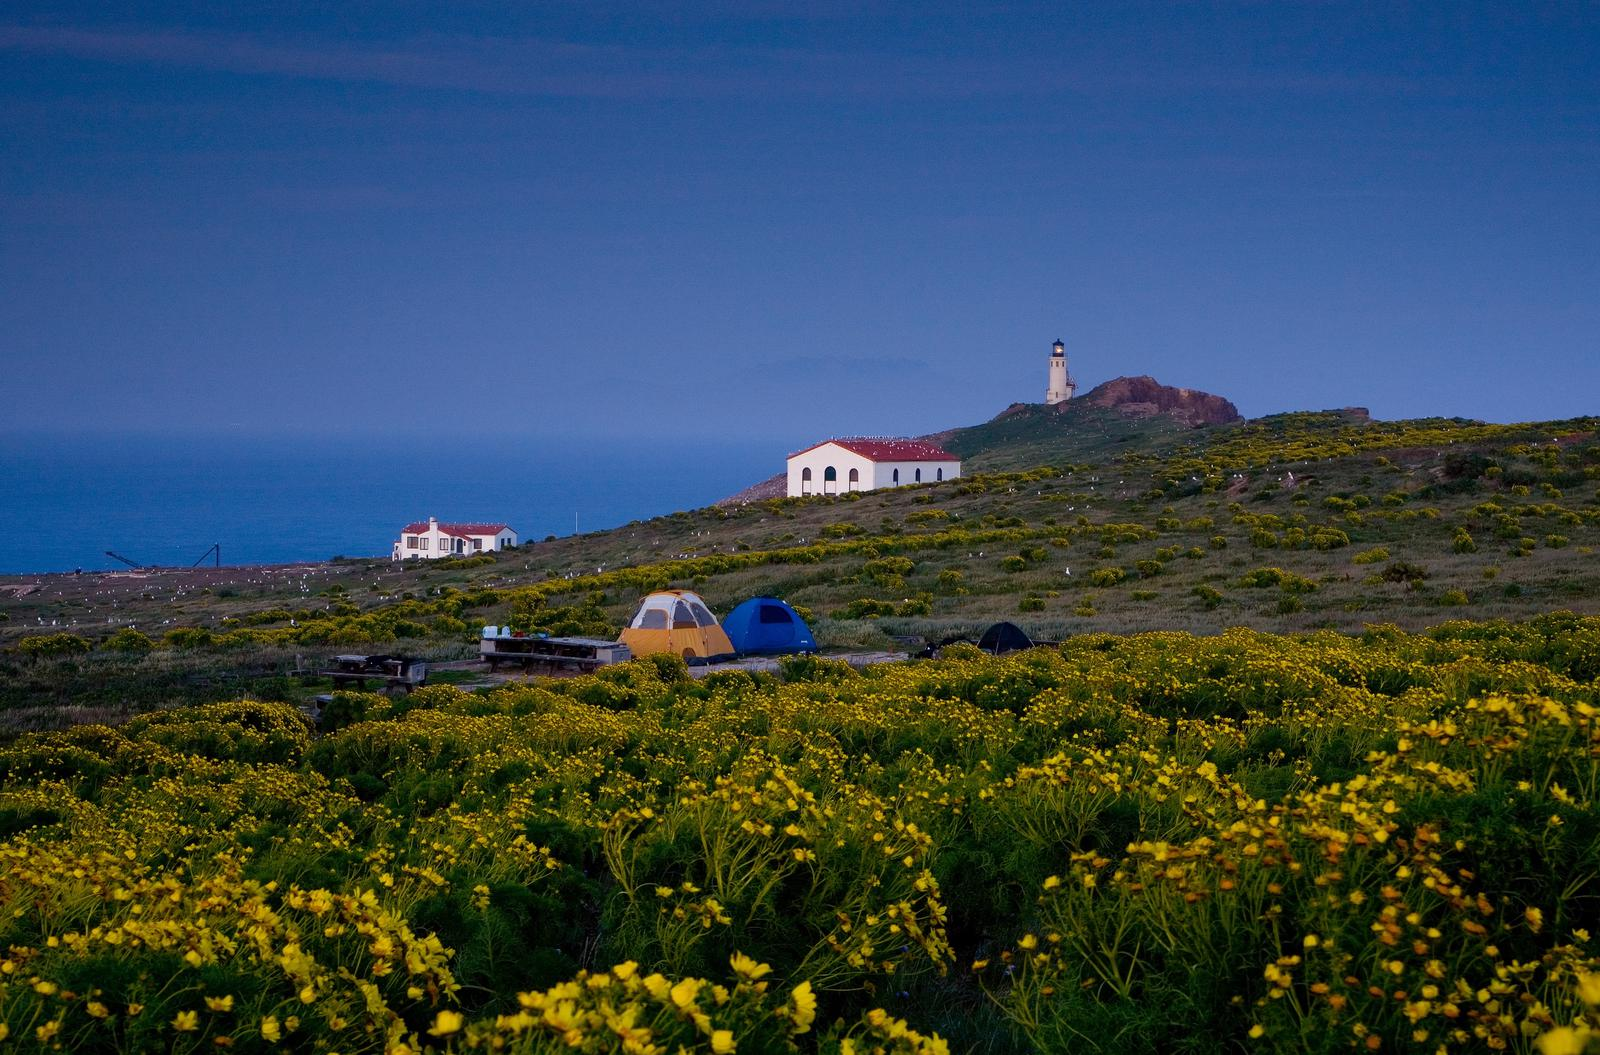 Two tents on terrace overlooking ocean, two buildings, and lighthouse.Anacapa Island